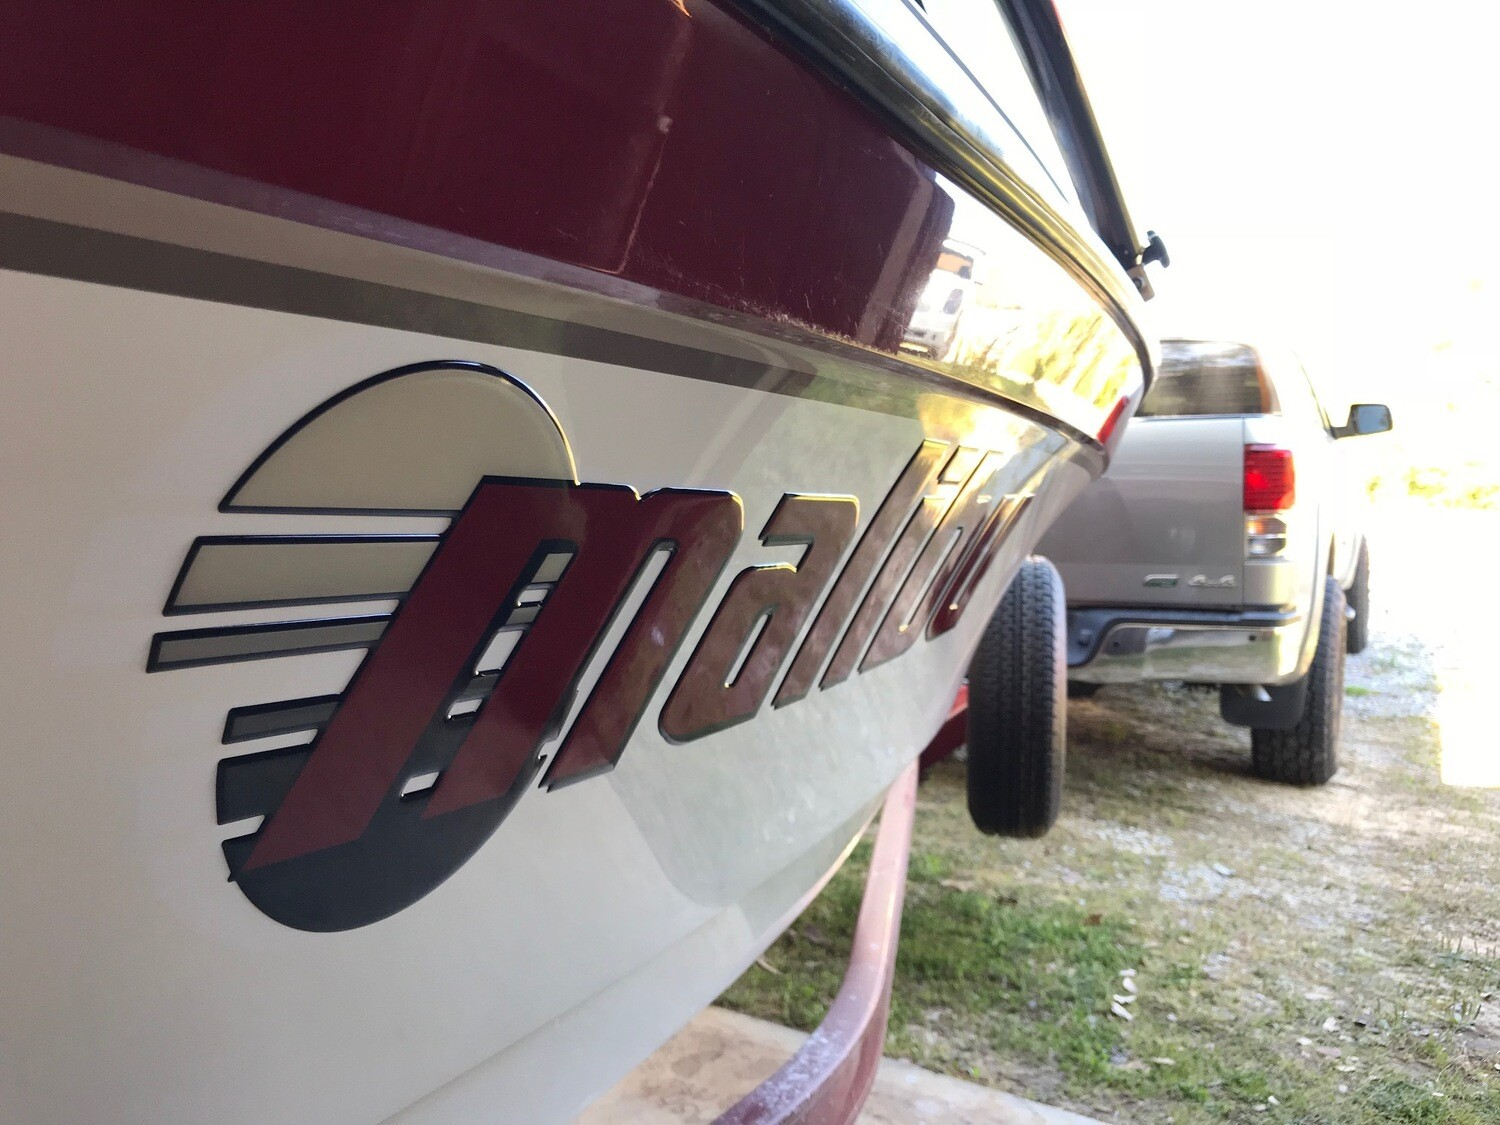 Malibu Sunsetter Decal Set - Choose Your Own Colors! (2 included)